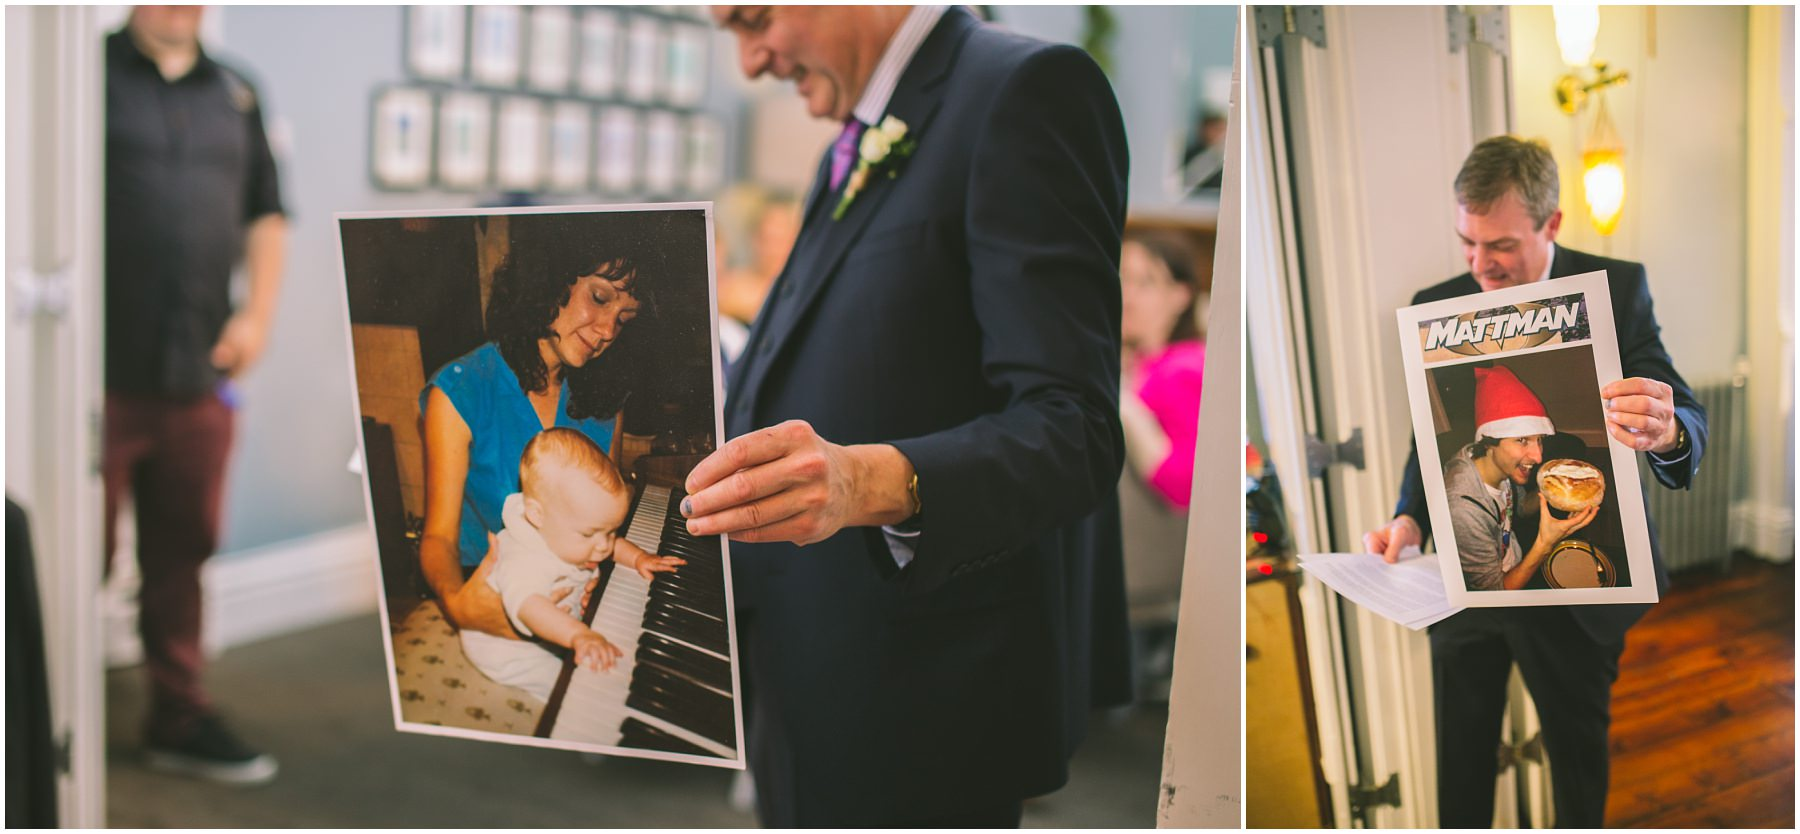 Father of the bride showing off embarrassing photos during his speech